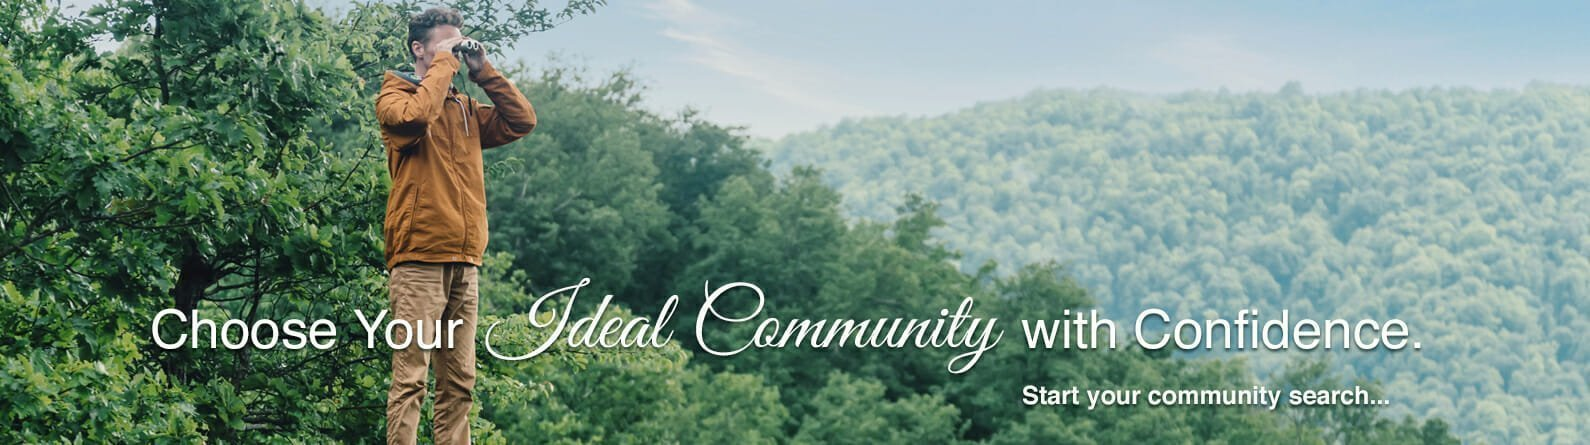 ideal-LIVING retirement communities Your Home, Lifestyle, and Destination Experts ideal living magazine private communities luxury communities